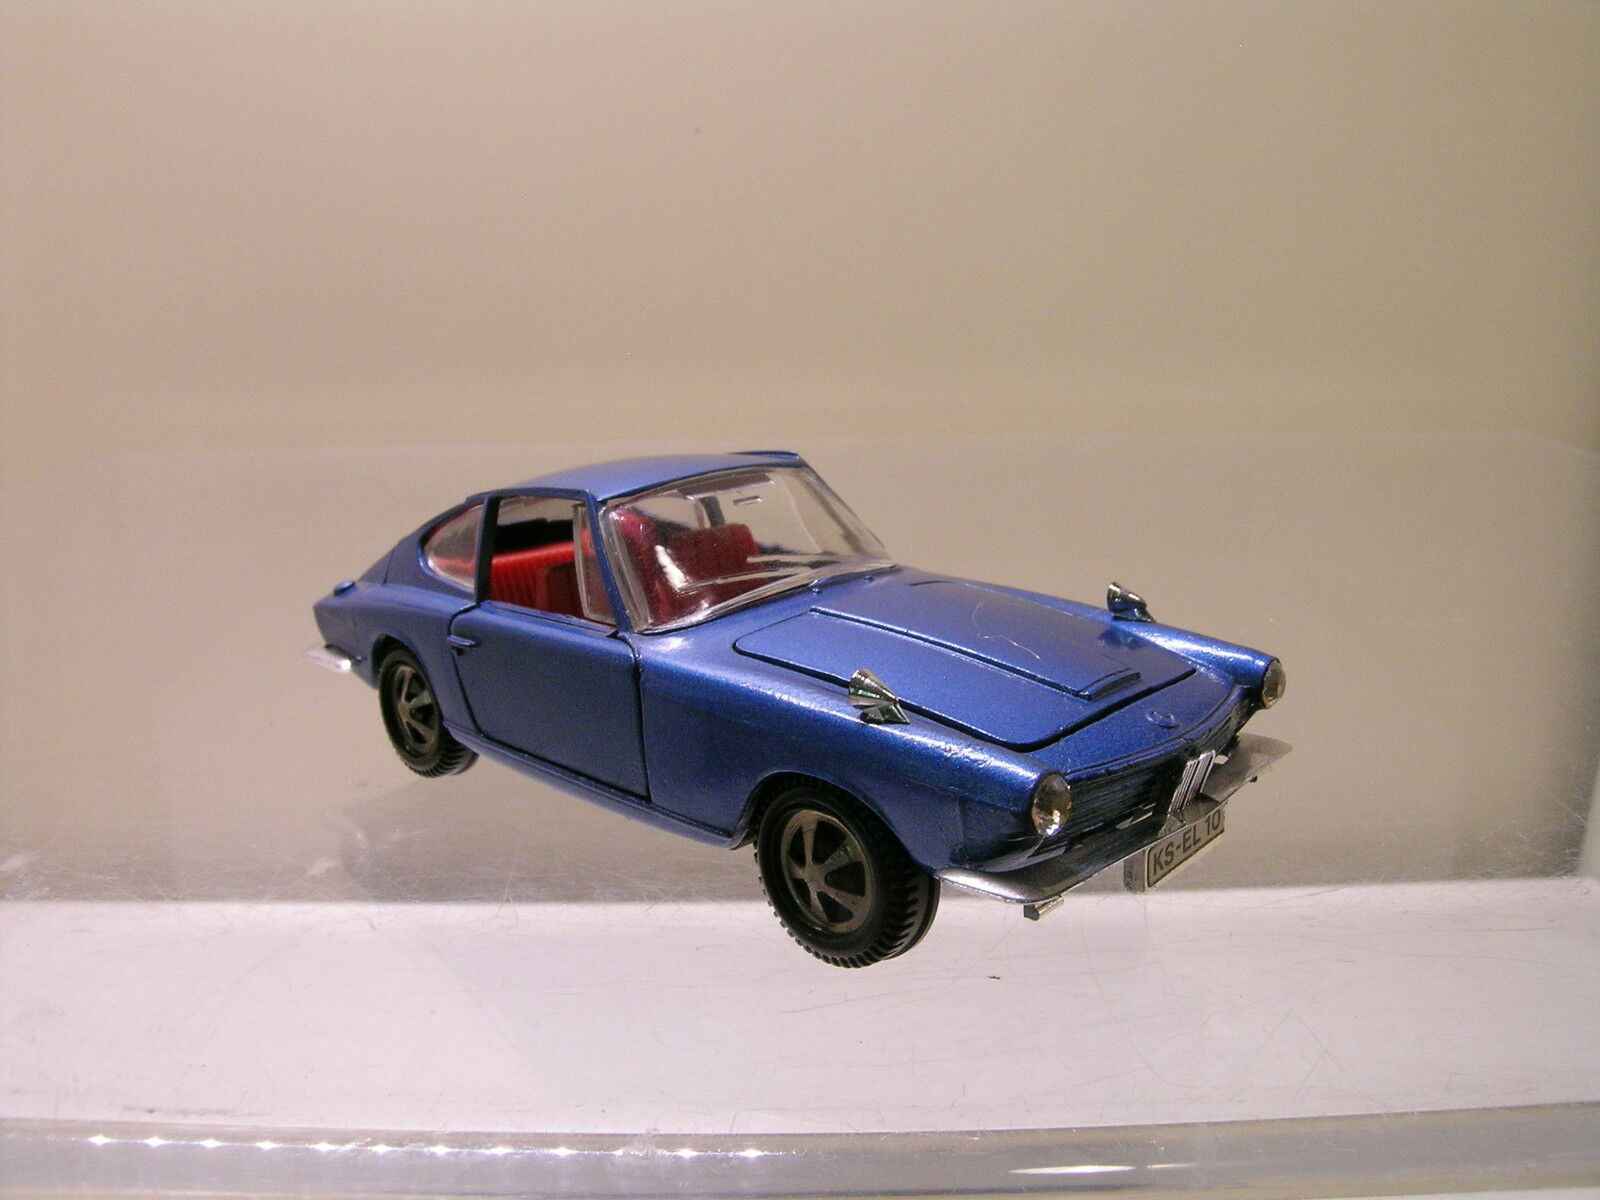 MARKLIN GERMANY 1812 GLAS BMW 1600GT COUPE COLOUR blueE MET. SCALE 1 43